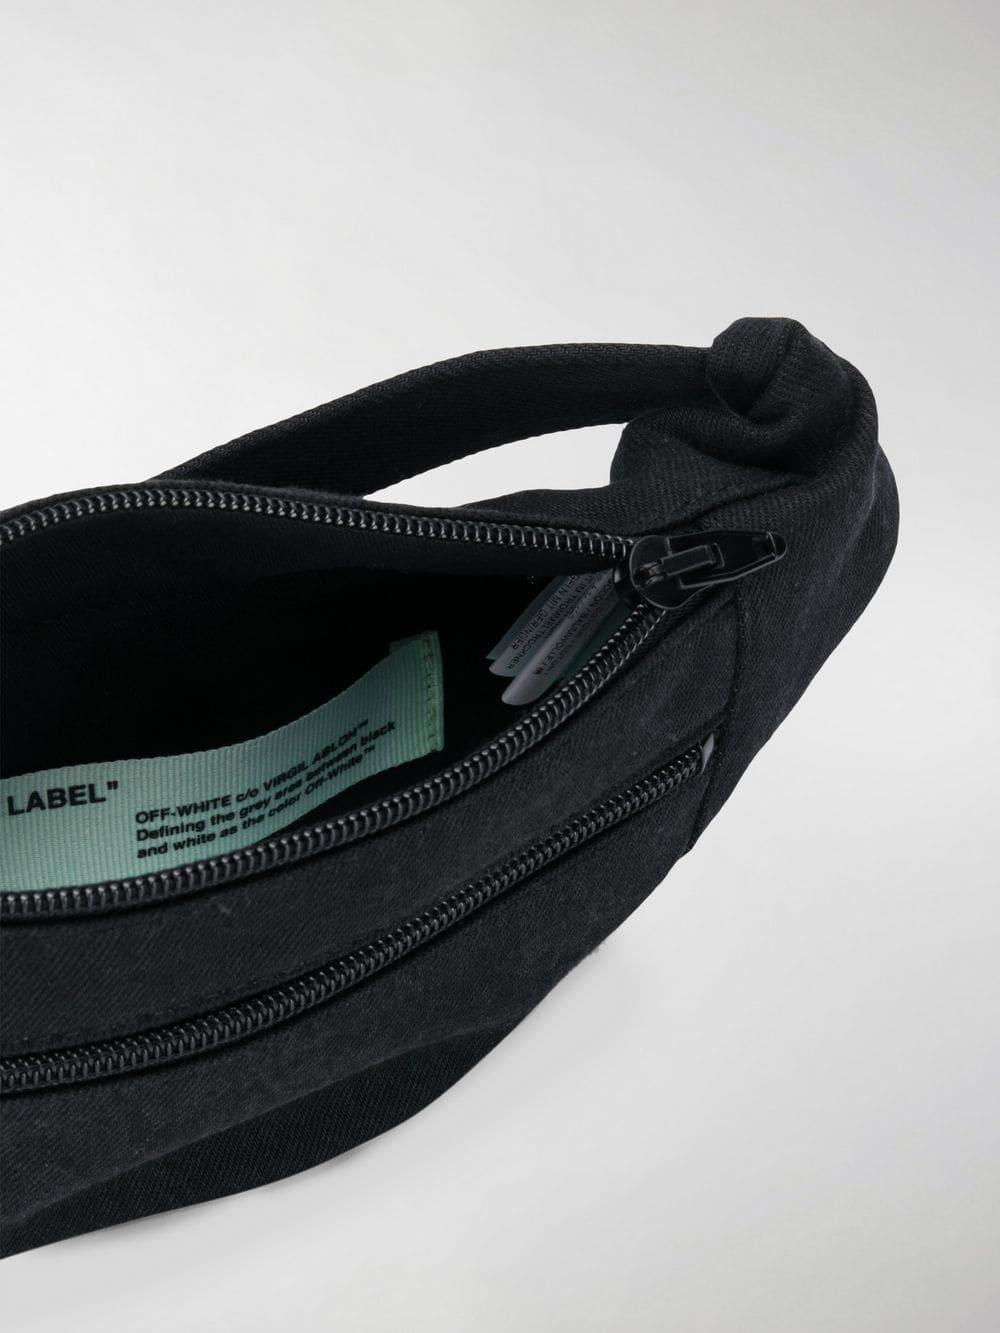 2d3443b953542 Off-White c/o Virgil Abloh - Black Denim Belt Bag for Men -. View fullscreen